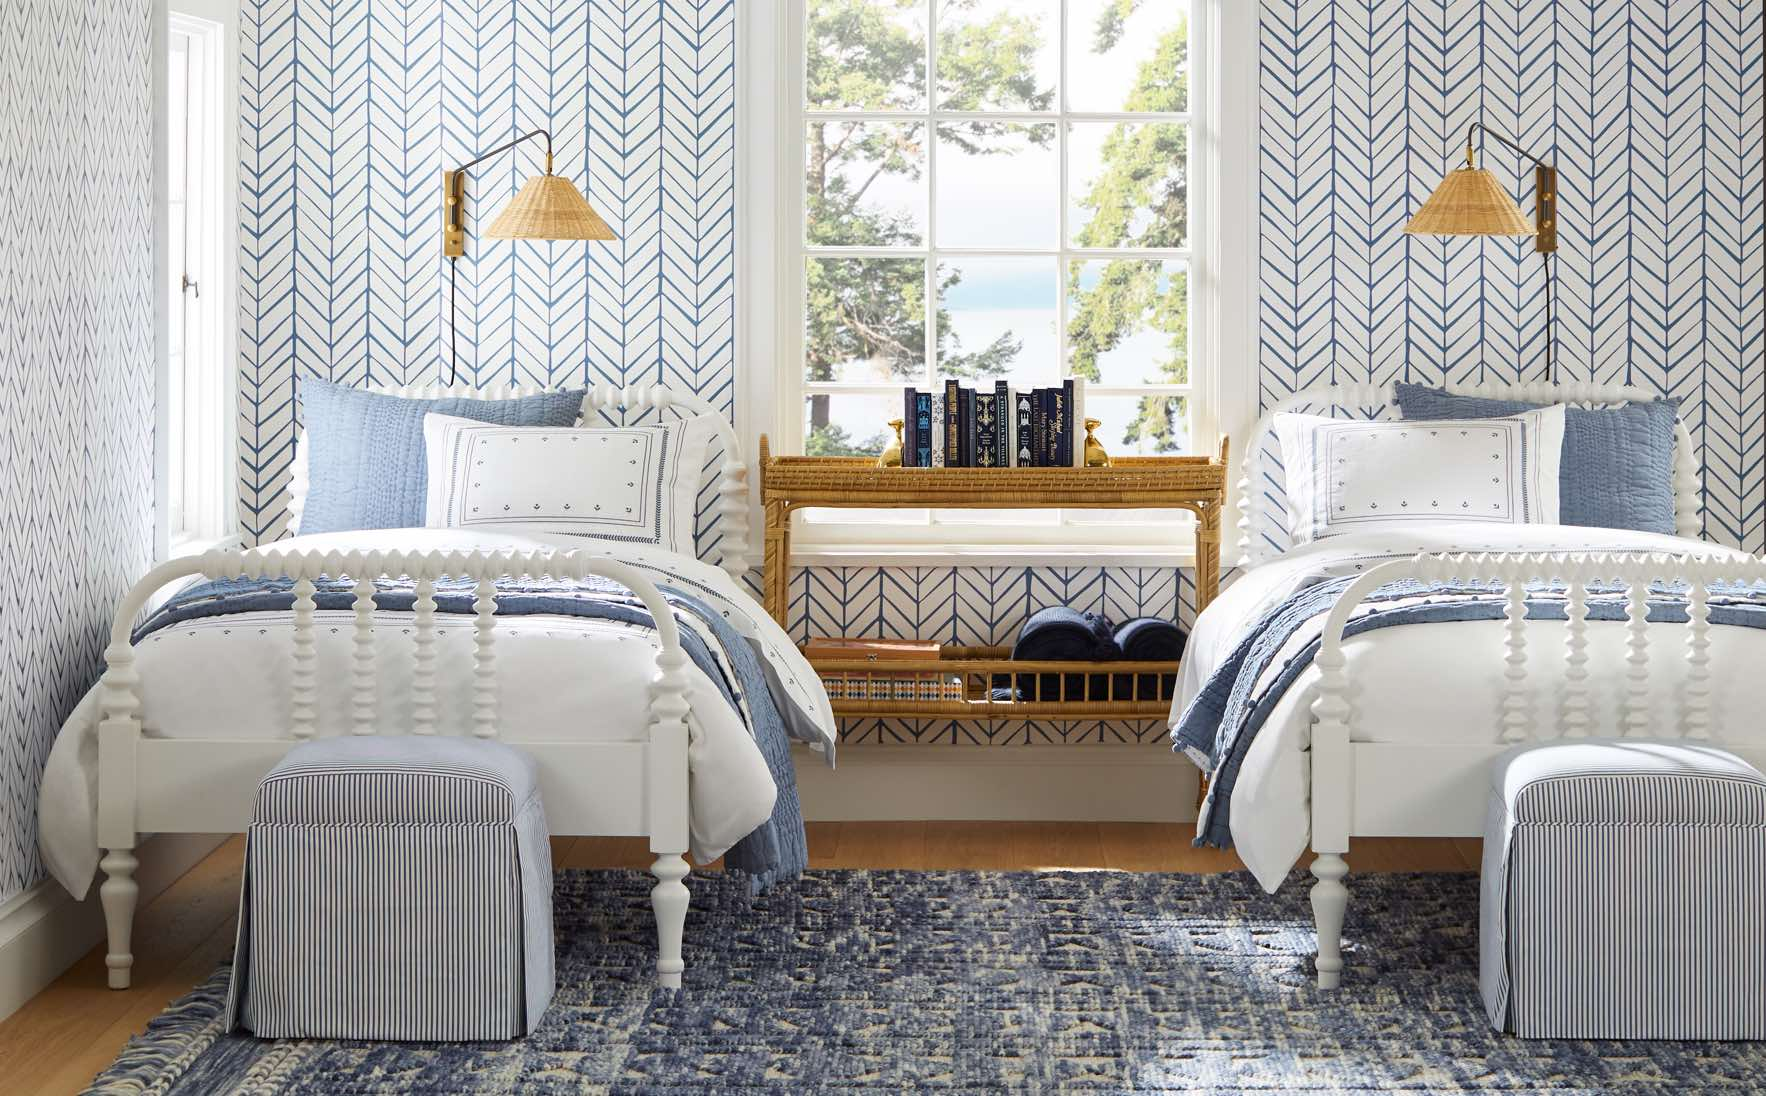 Nice in Blue and white bedroom from Serena & Lily